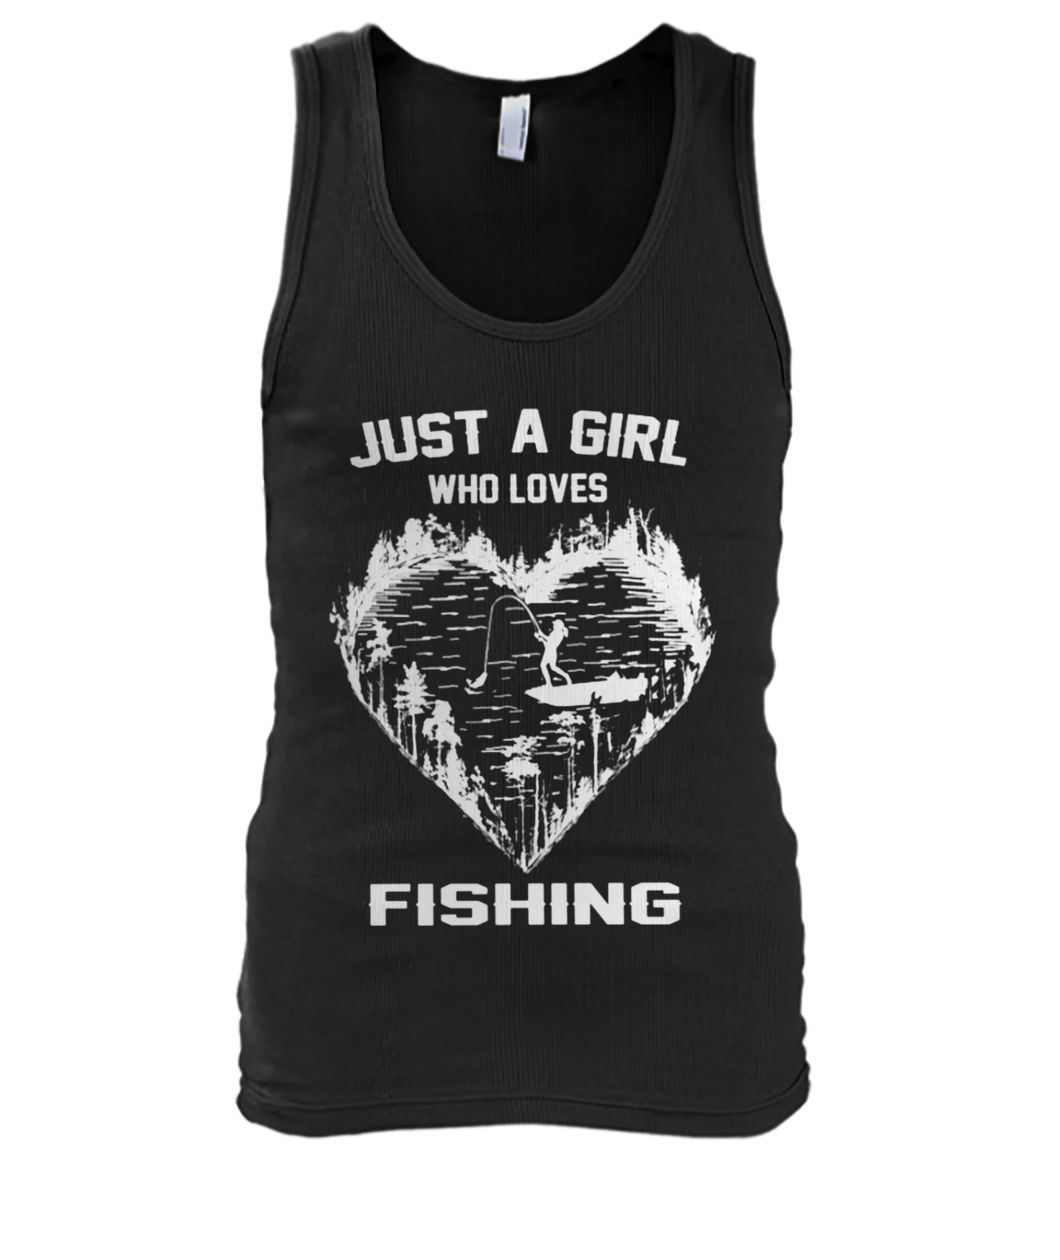 Just a girl who loves fishing men's tank top